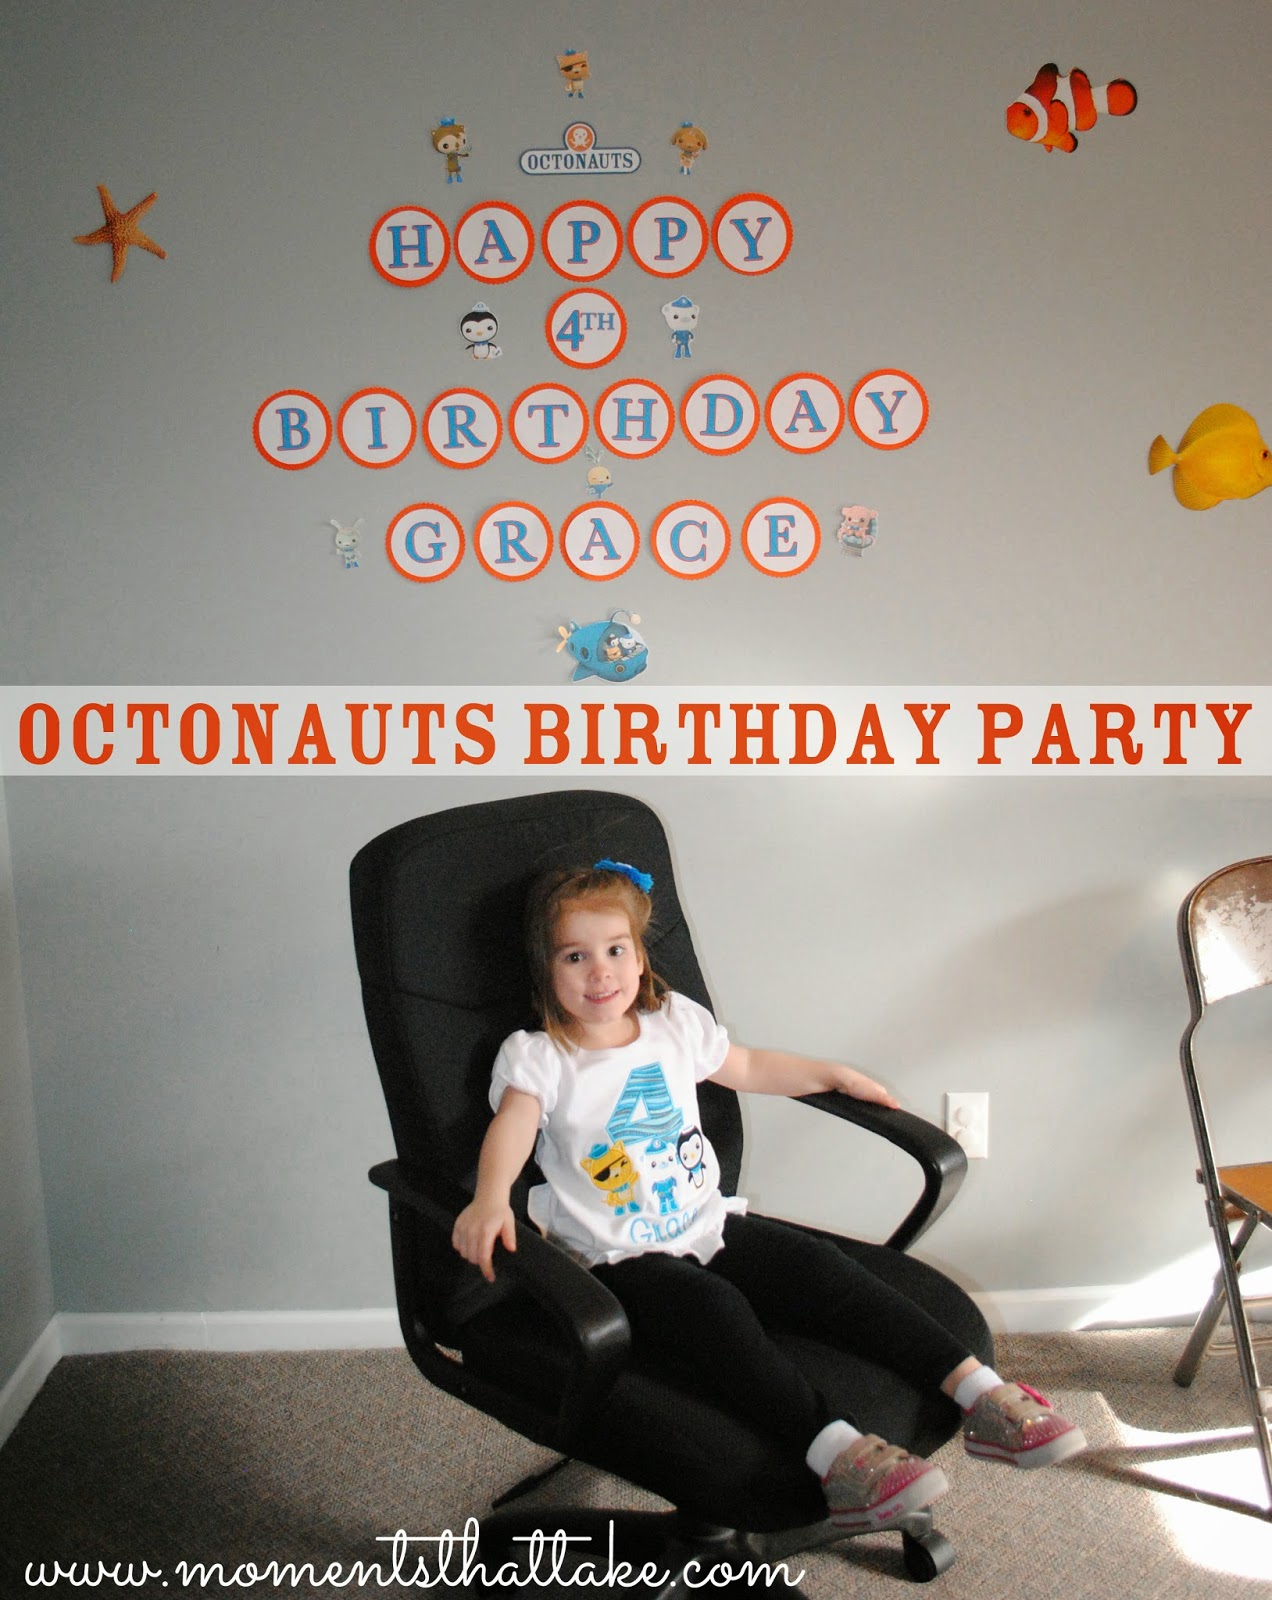 Octonauts Party Ideas